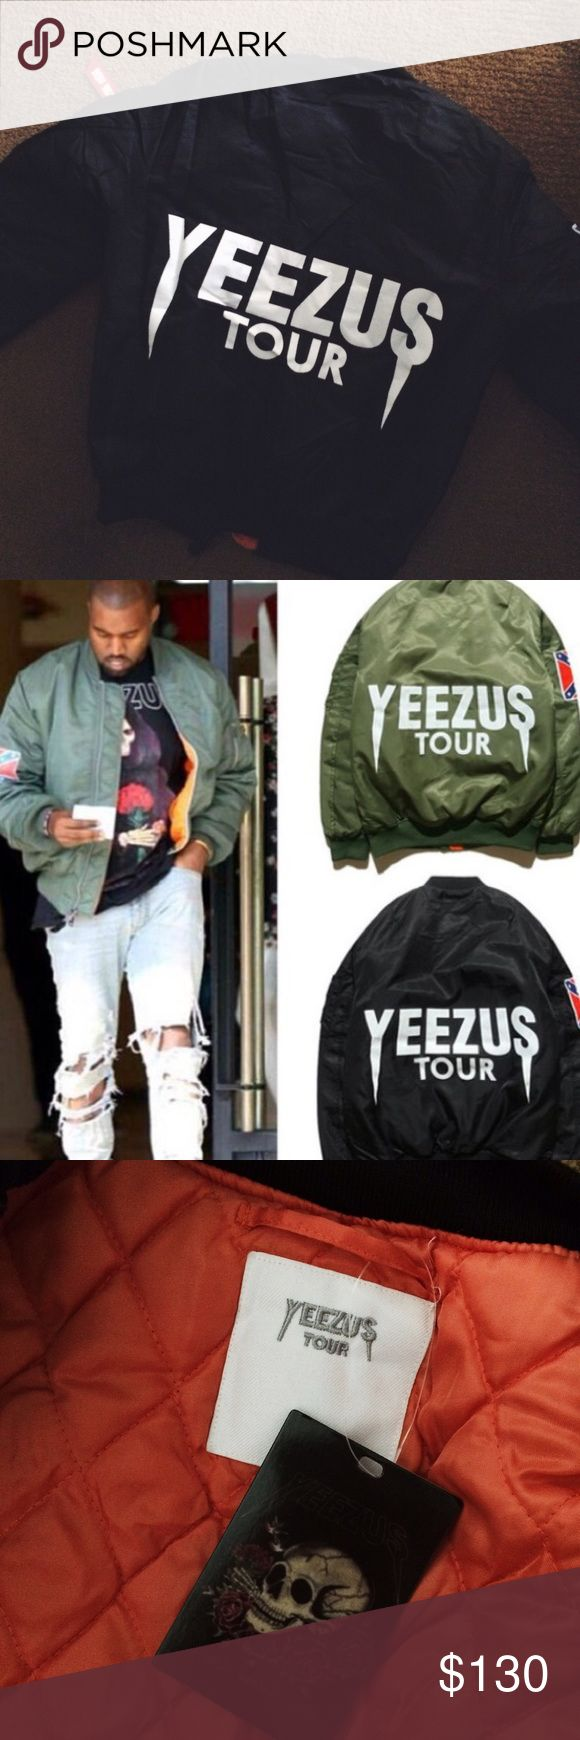 YEEZUS BOMBER JACKET NEW WITH TAGS!! Received this as a present because.. Well I love Kanye. Unfortunately he designed it with a confederate flag patch on the arm & I'm not about to sport that. I was thinking of taking it off but I didn't want to take away from the artistry. Yeezy Jackets & Coats